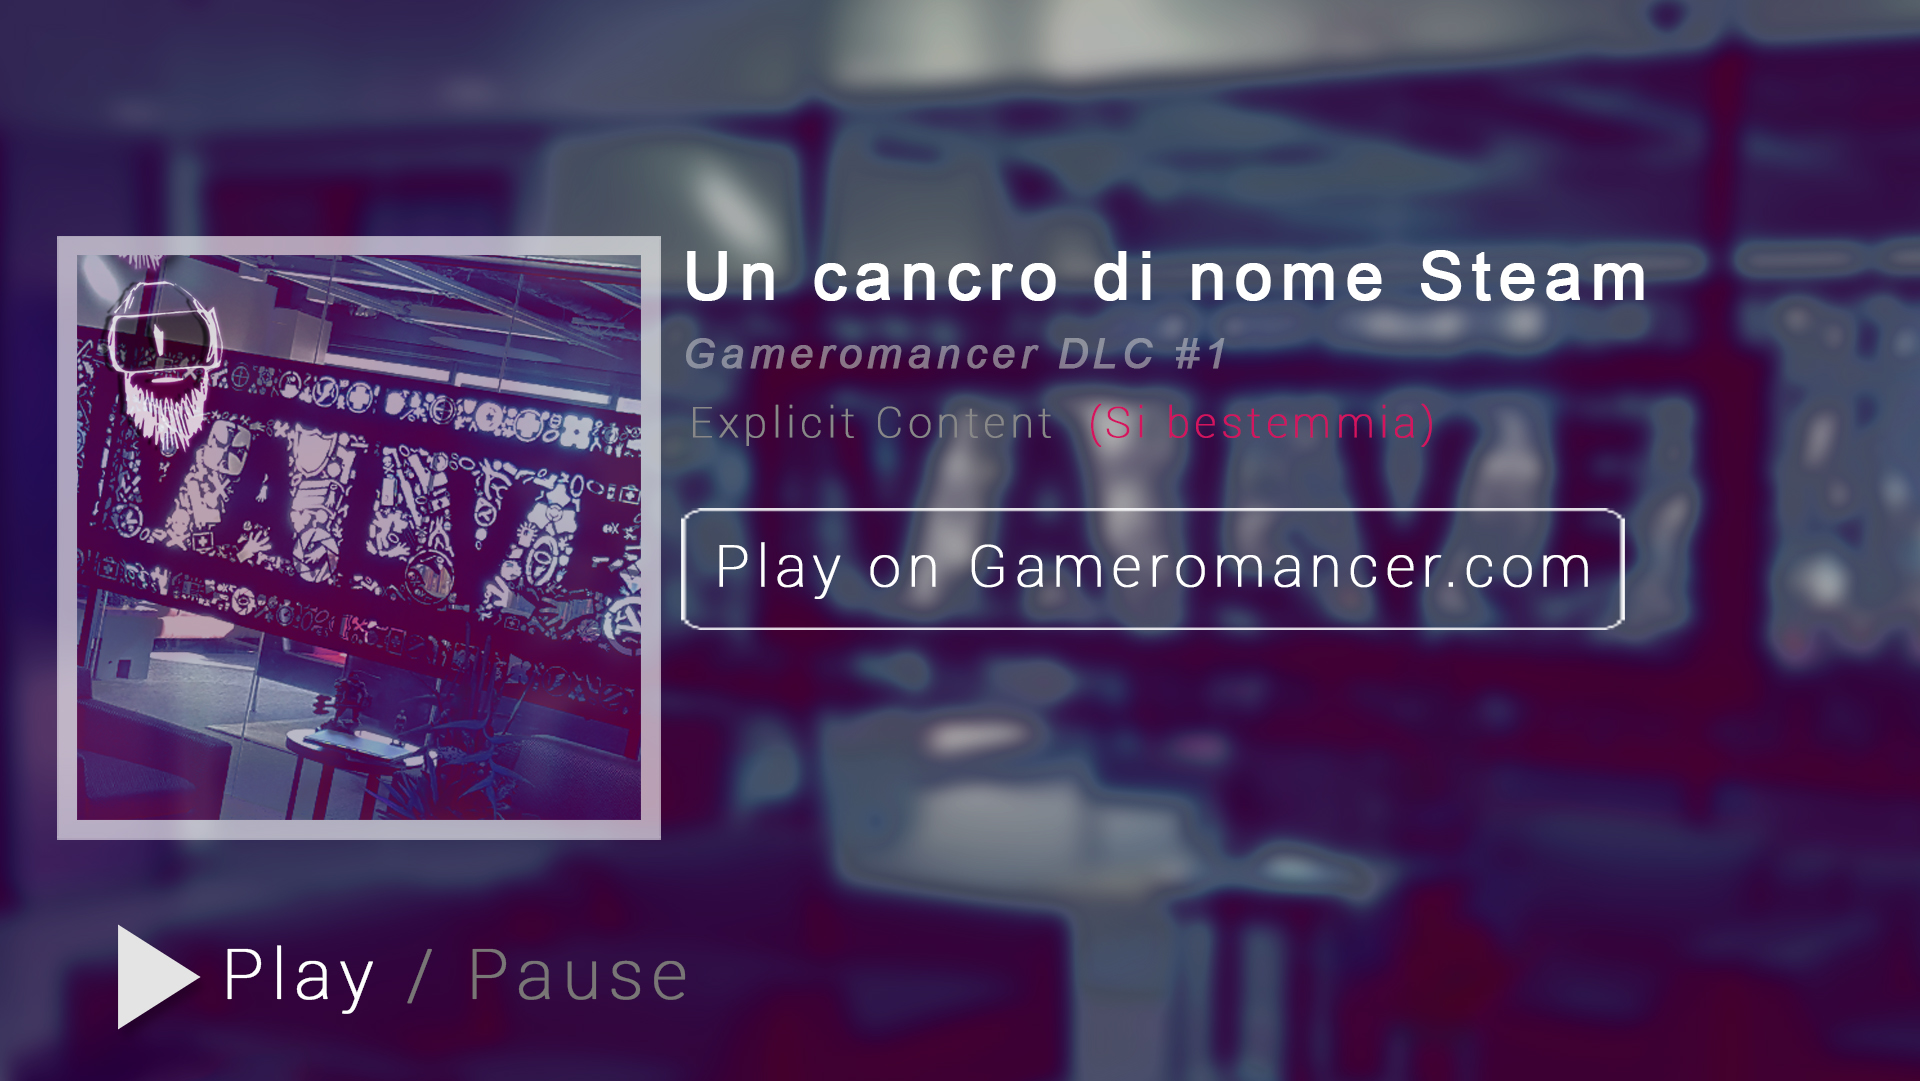 DLC #1: Un cancro di nome Steam